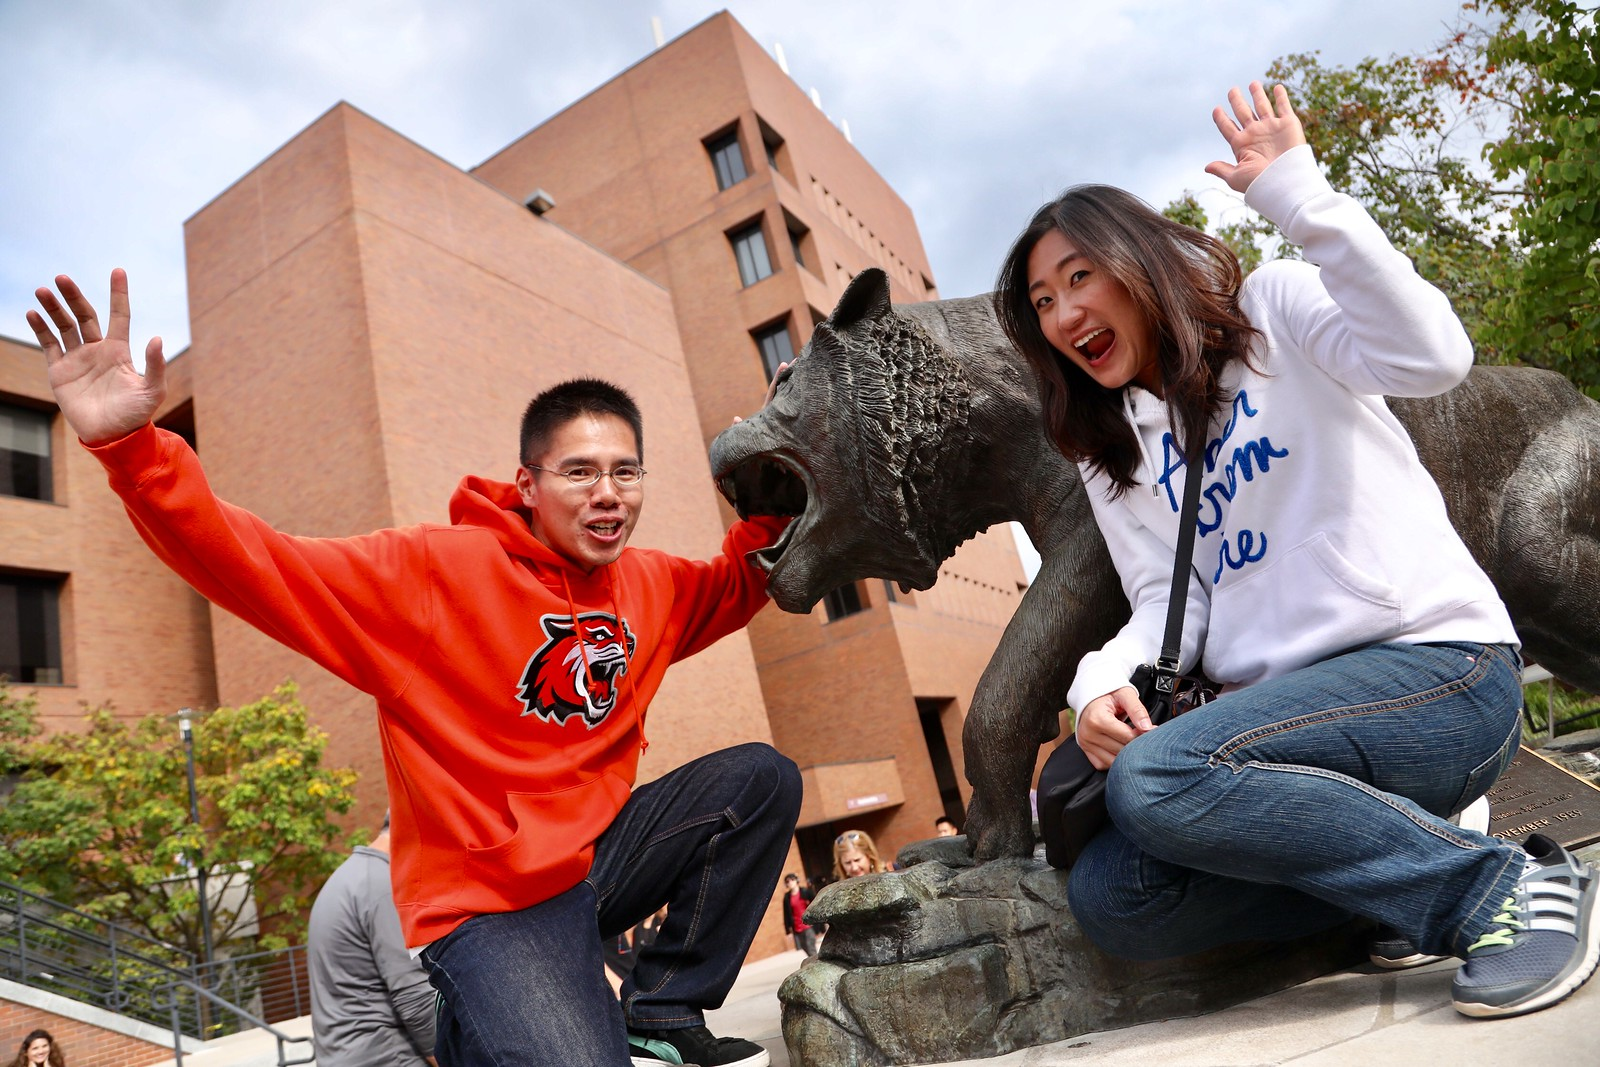 two people with their hands in the air standing next to the tiger statue with the estman building in the background